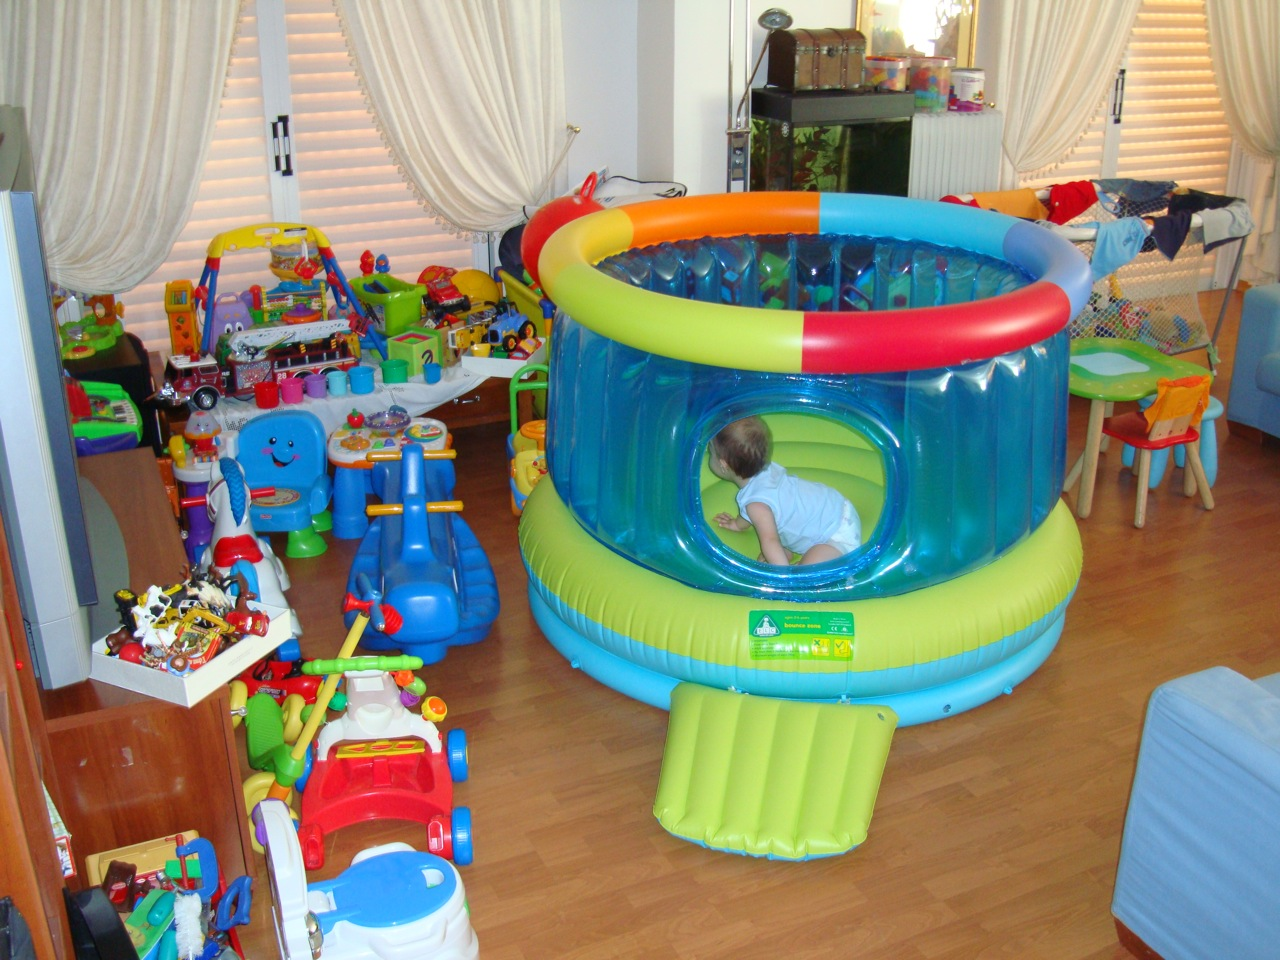 Kids Room With Toys a full with toys living room is our kids' heaven! - a photo on